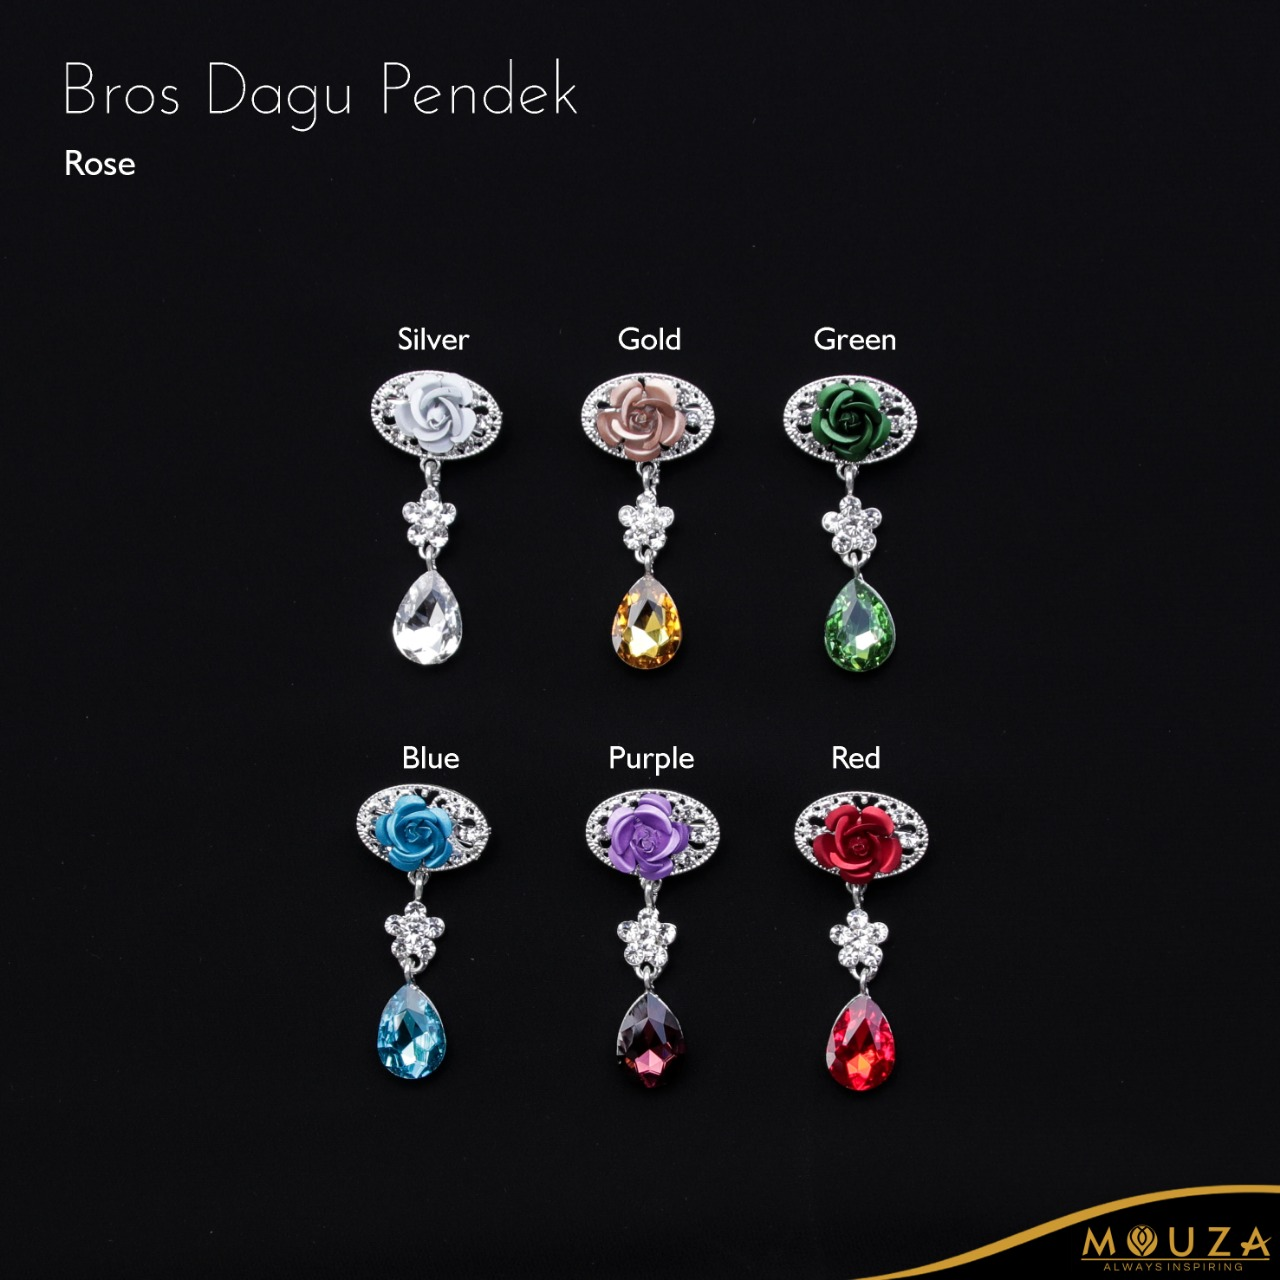 Bross Dagu Pendek Rose